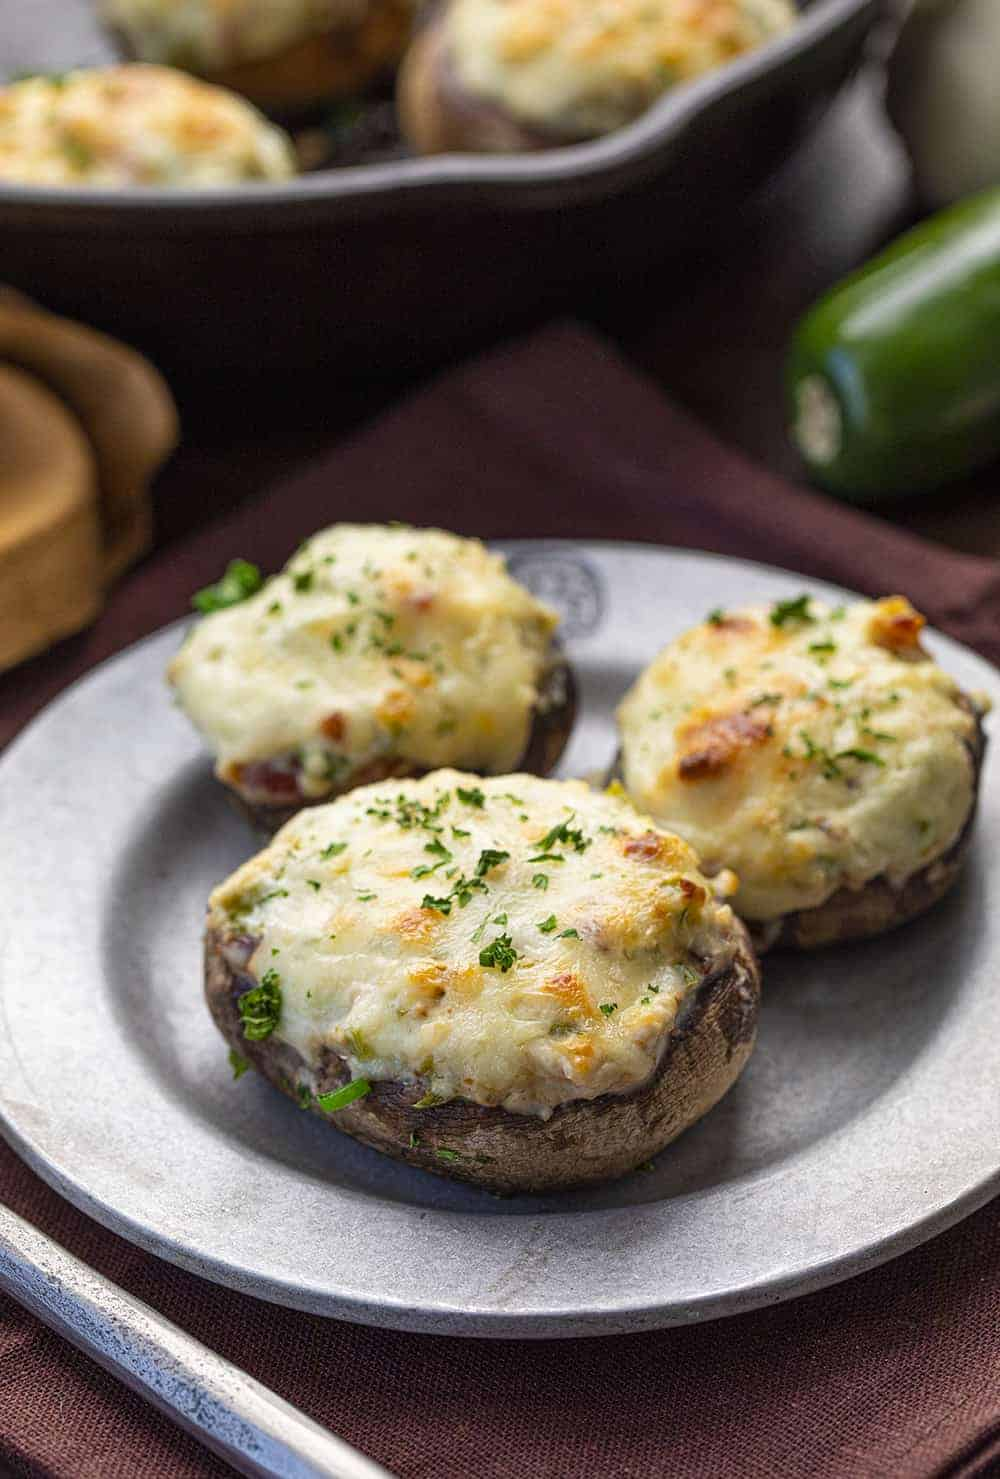 Plate with Jalapeno Popper Stuffed Mushrooms on It